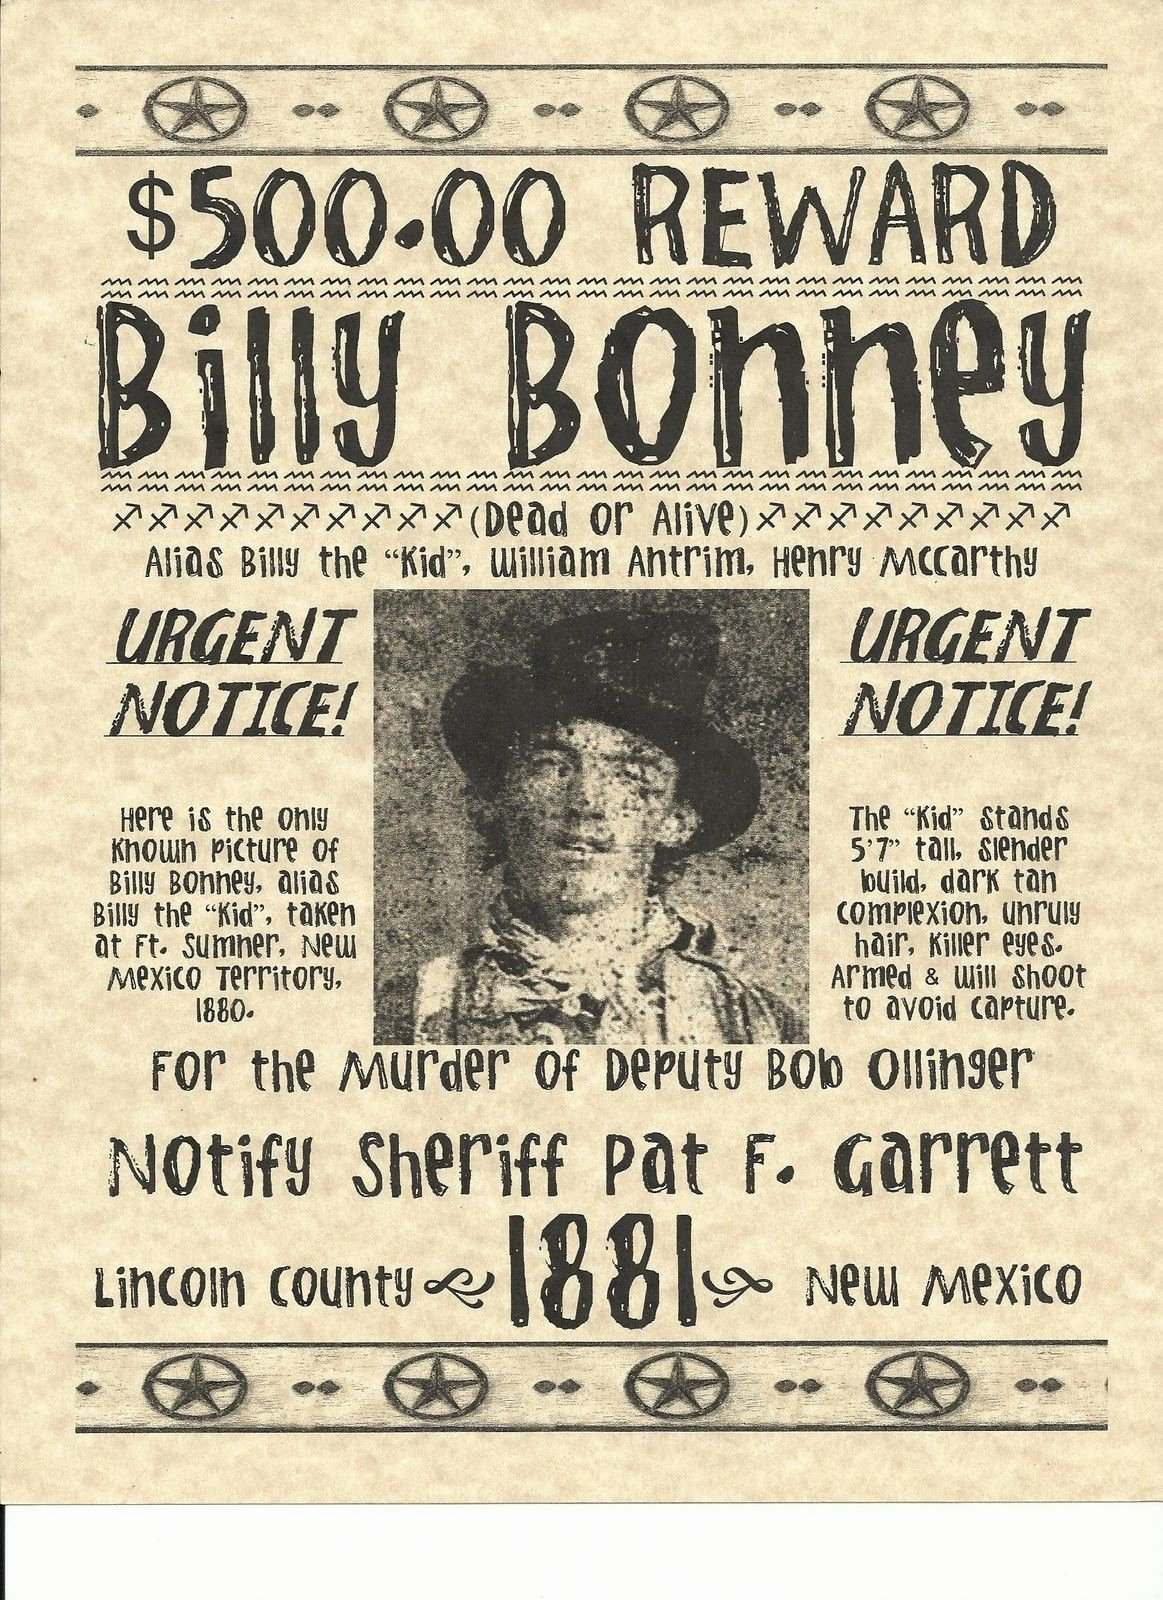 Old Western Wanted Poster Inspirational Old West Wanted Posters